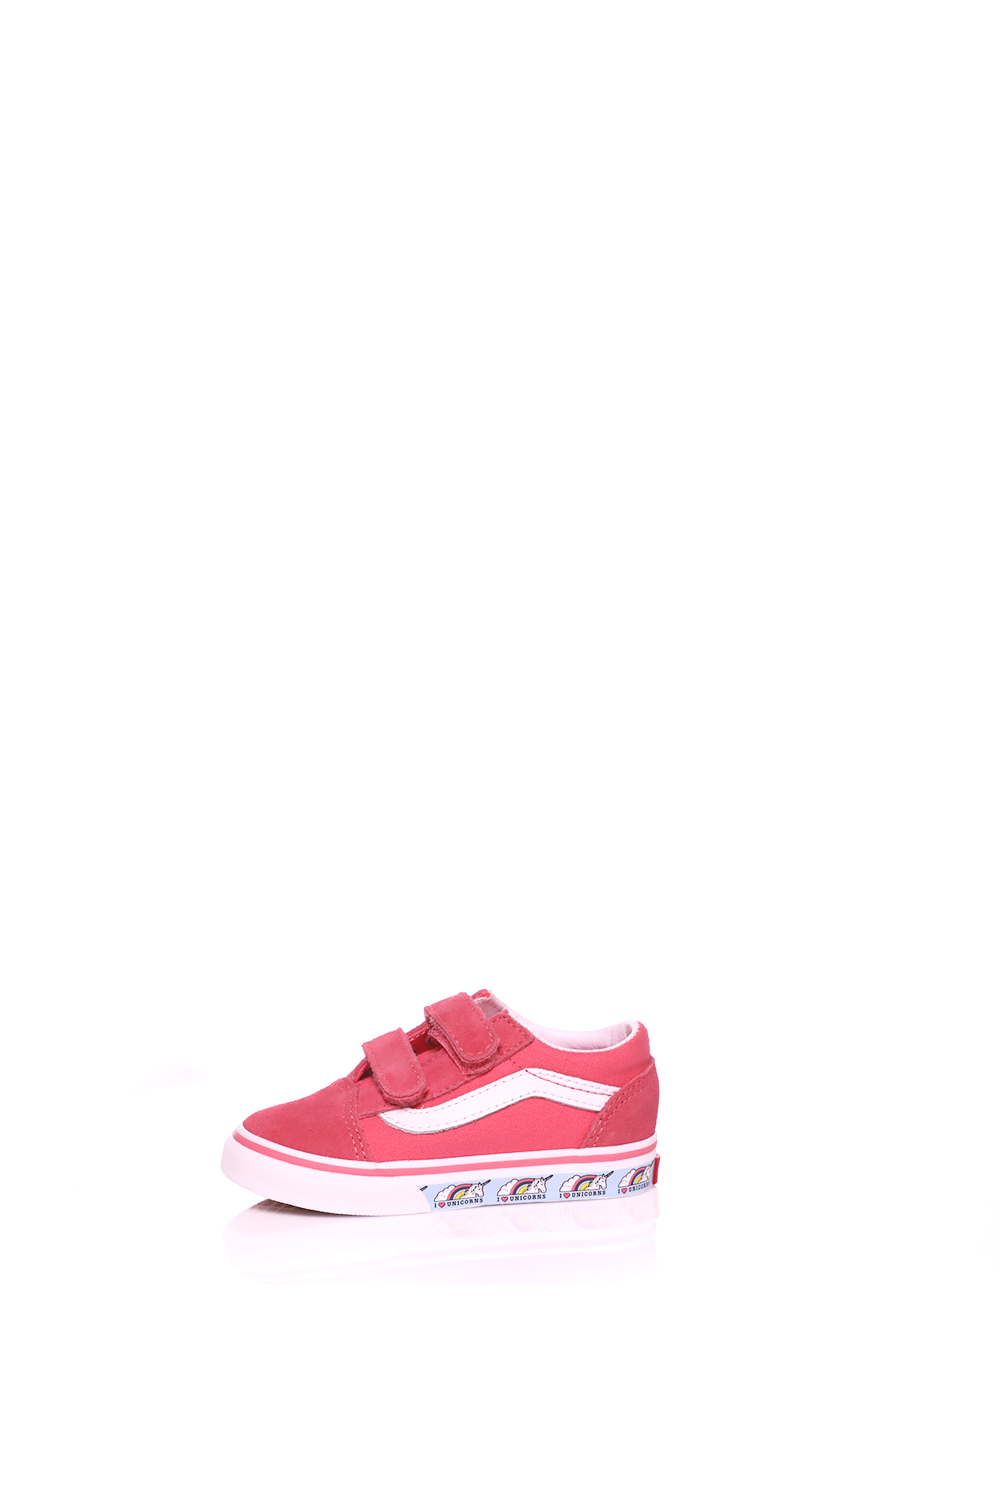 VANS – Βρεφικά sneakers VANS OLD SKOOL ροζ